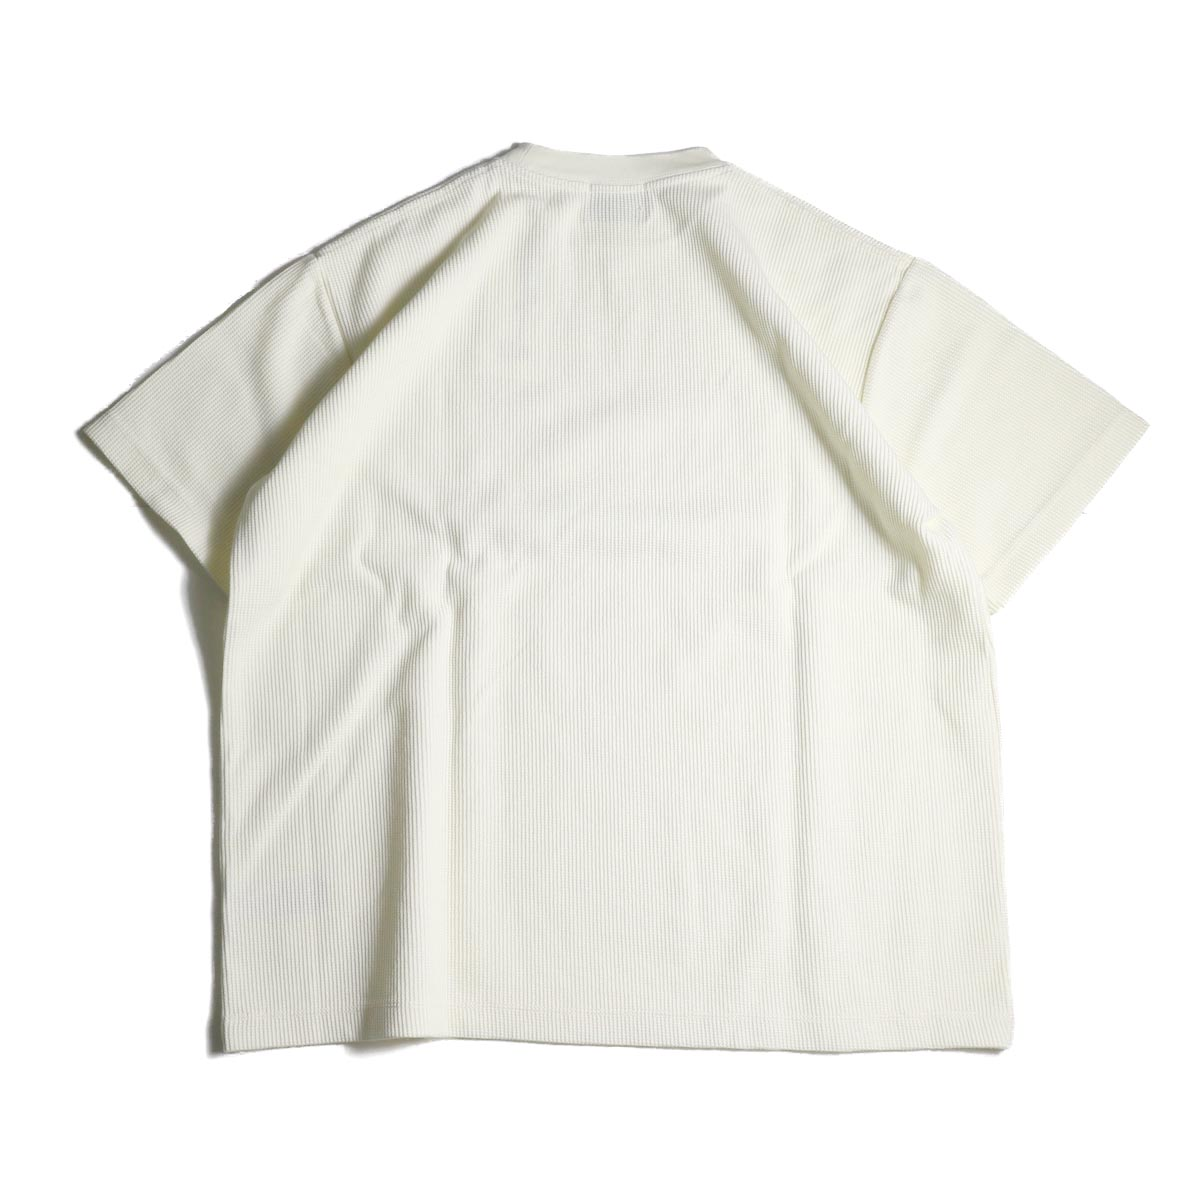 blurhms / Rough&Smooth Thermal Over-neck S/S (Off)背面